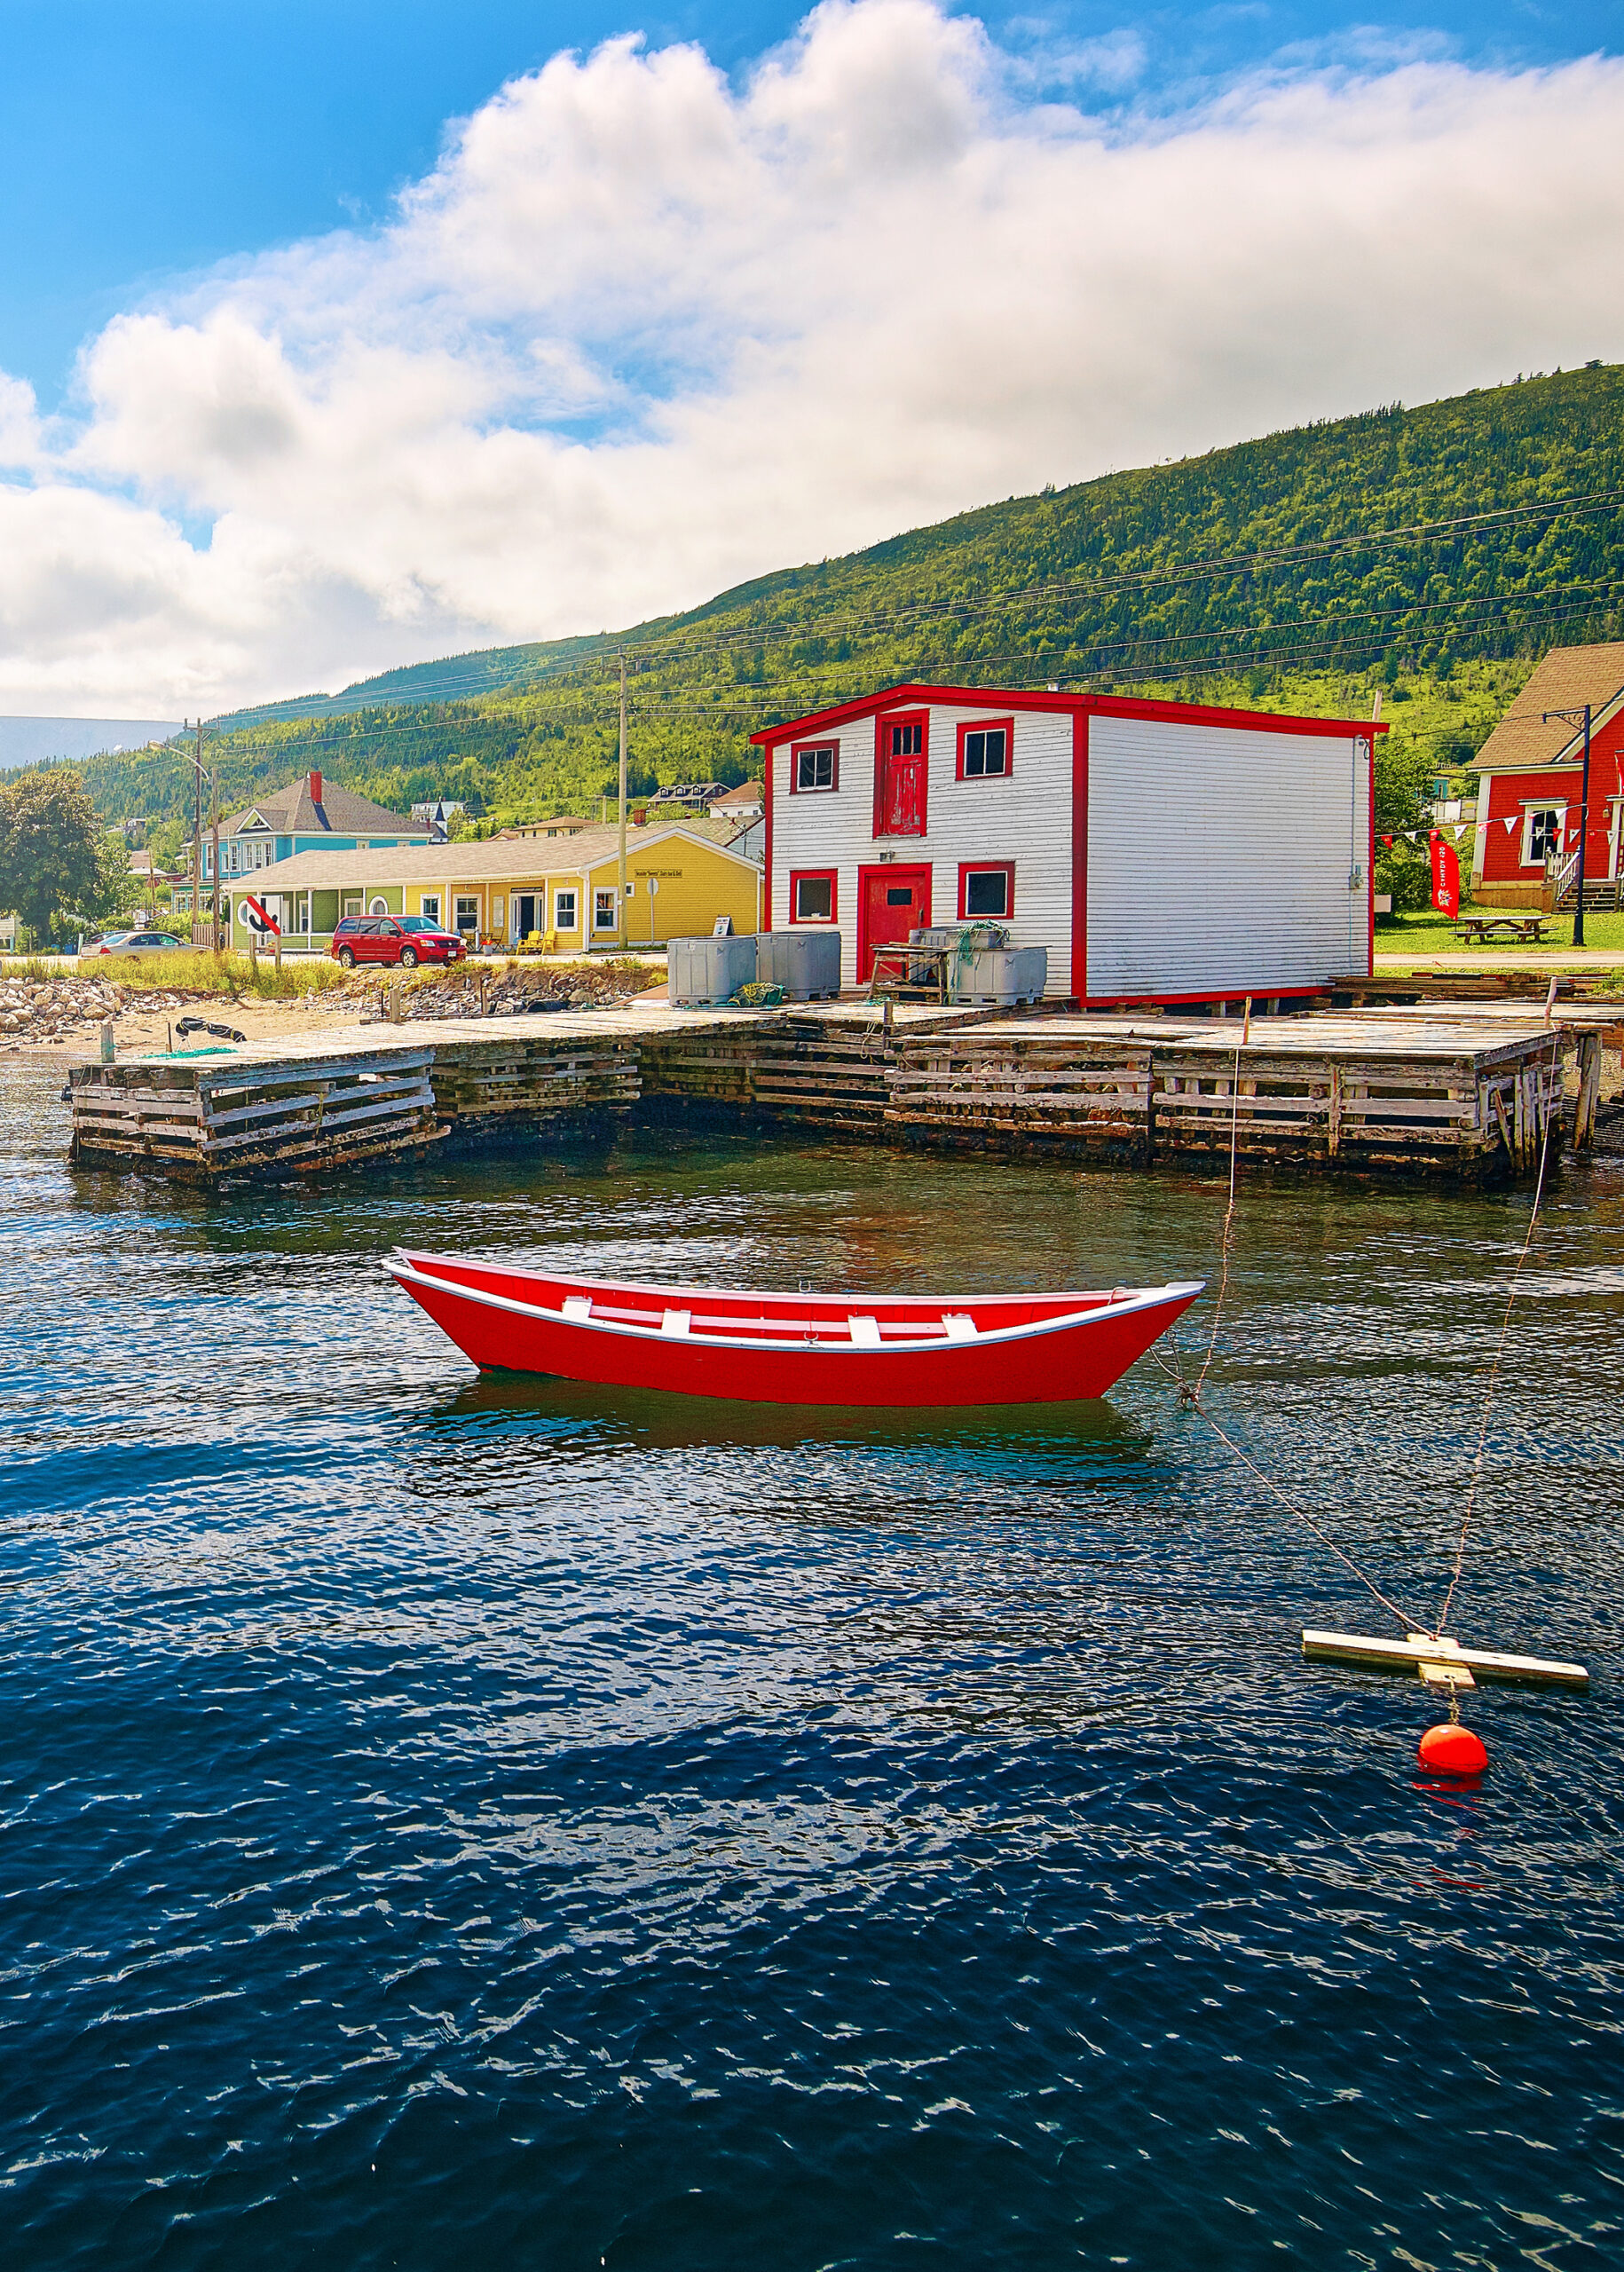 A white and red building on the shore of a bay in Woody Point. There is a red row boat with white trim floating in the water. You can see other colorful buildings that are yellow, blue, and red, in the back ground. There is a hill covered in trees. It is one of the best stops on a West Newfoundland itinerary.